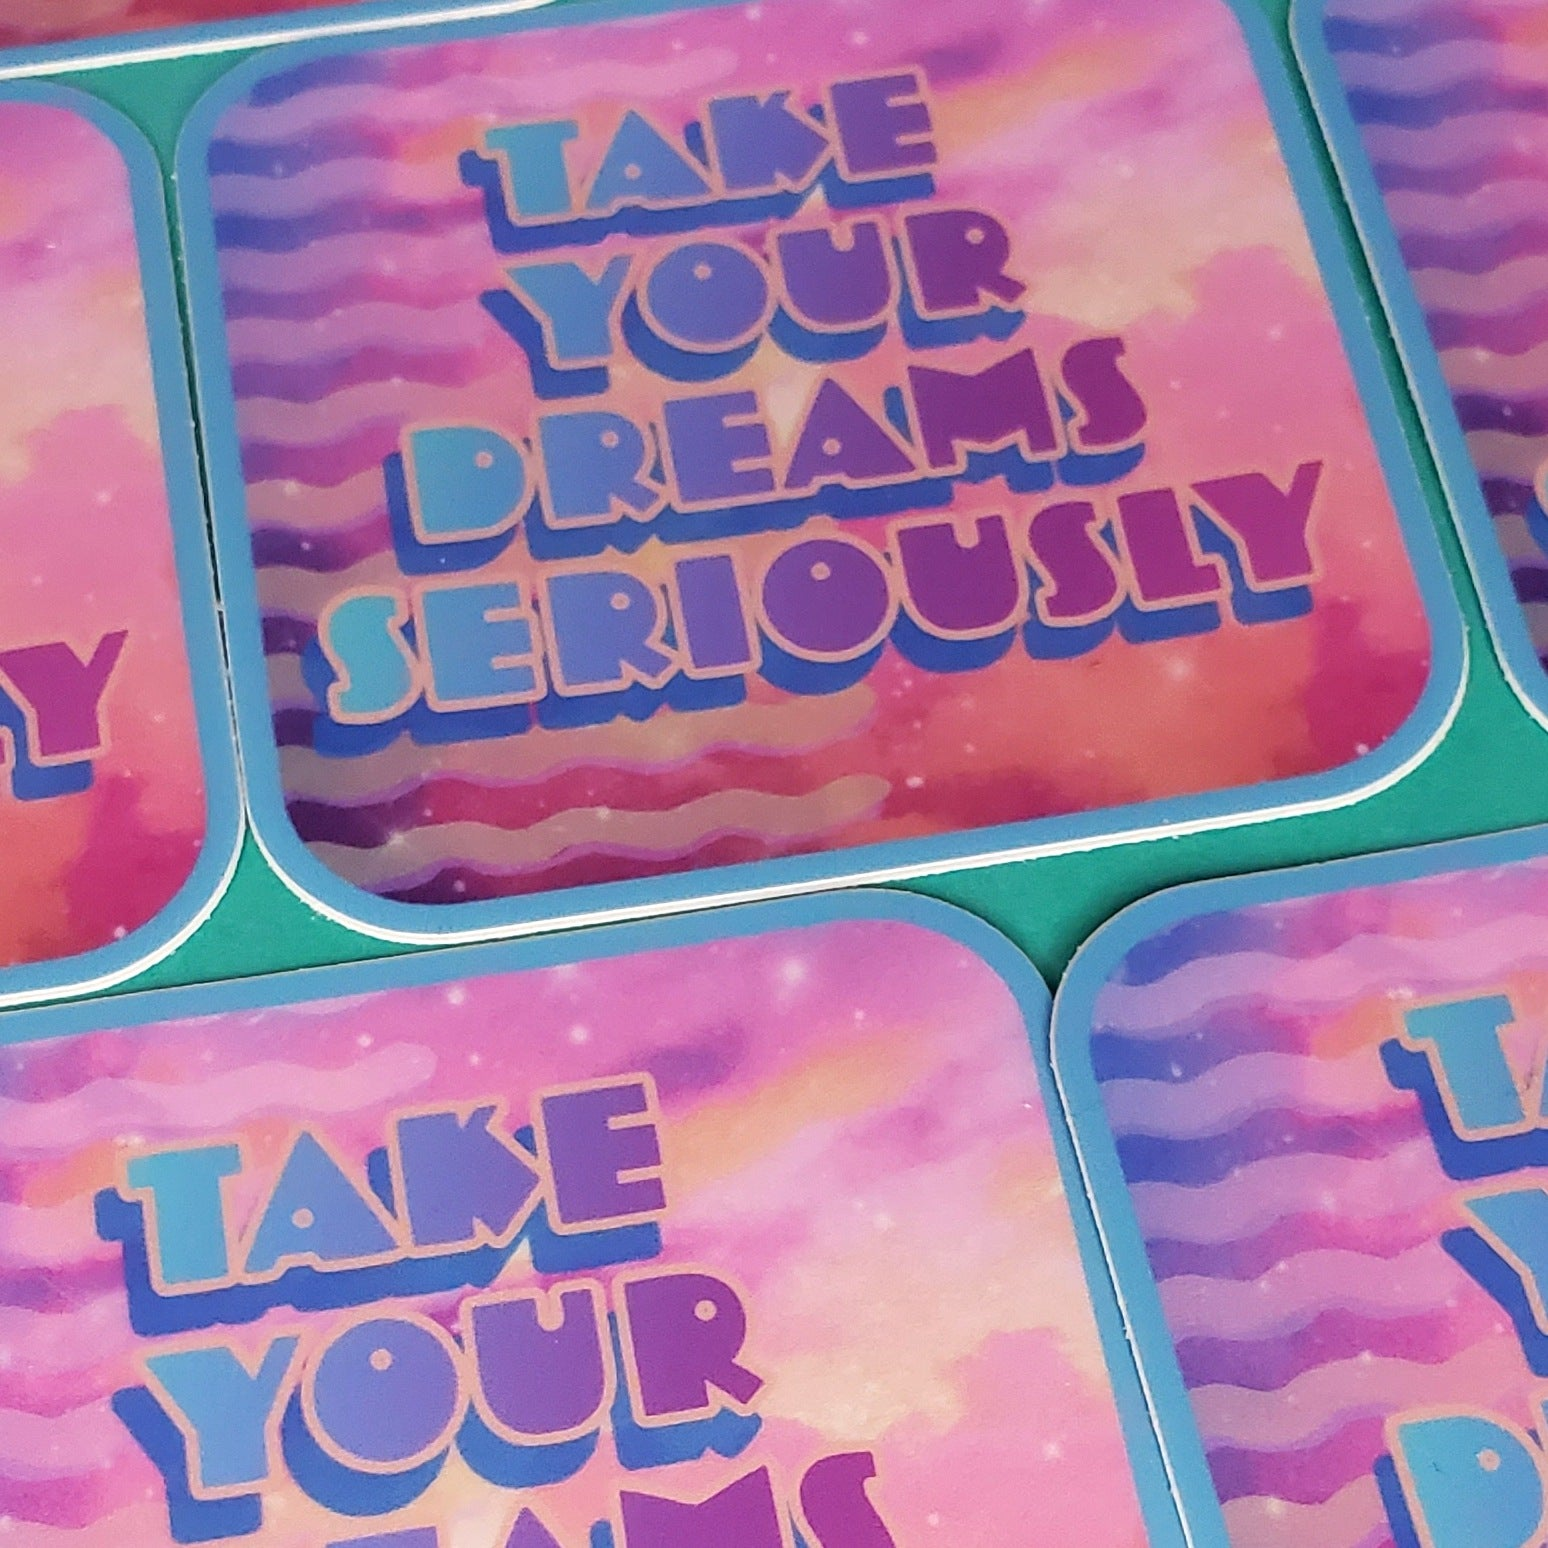 TAKE YOUR DREAMS SERIOUSLY STICKER